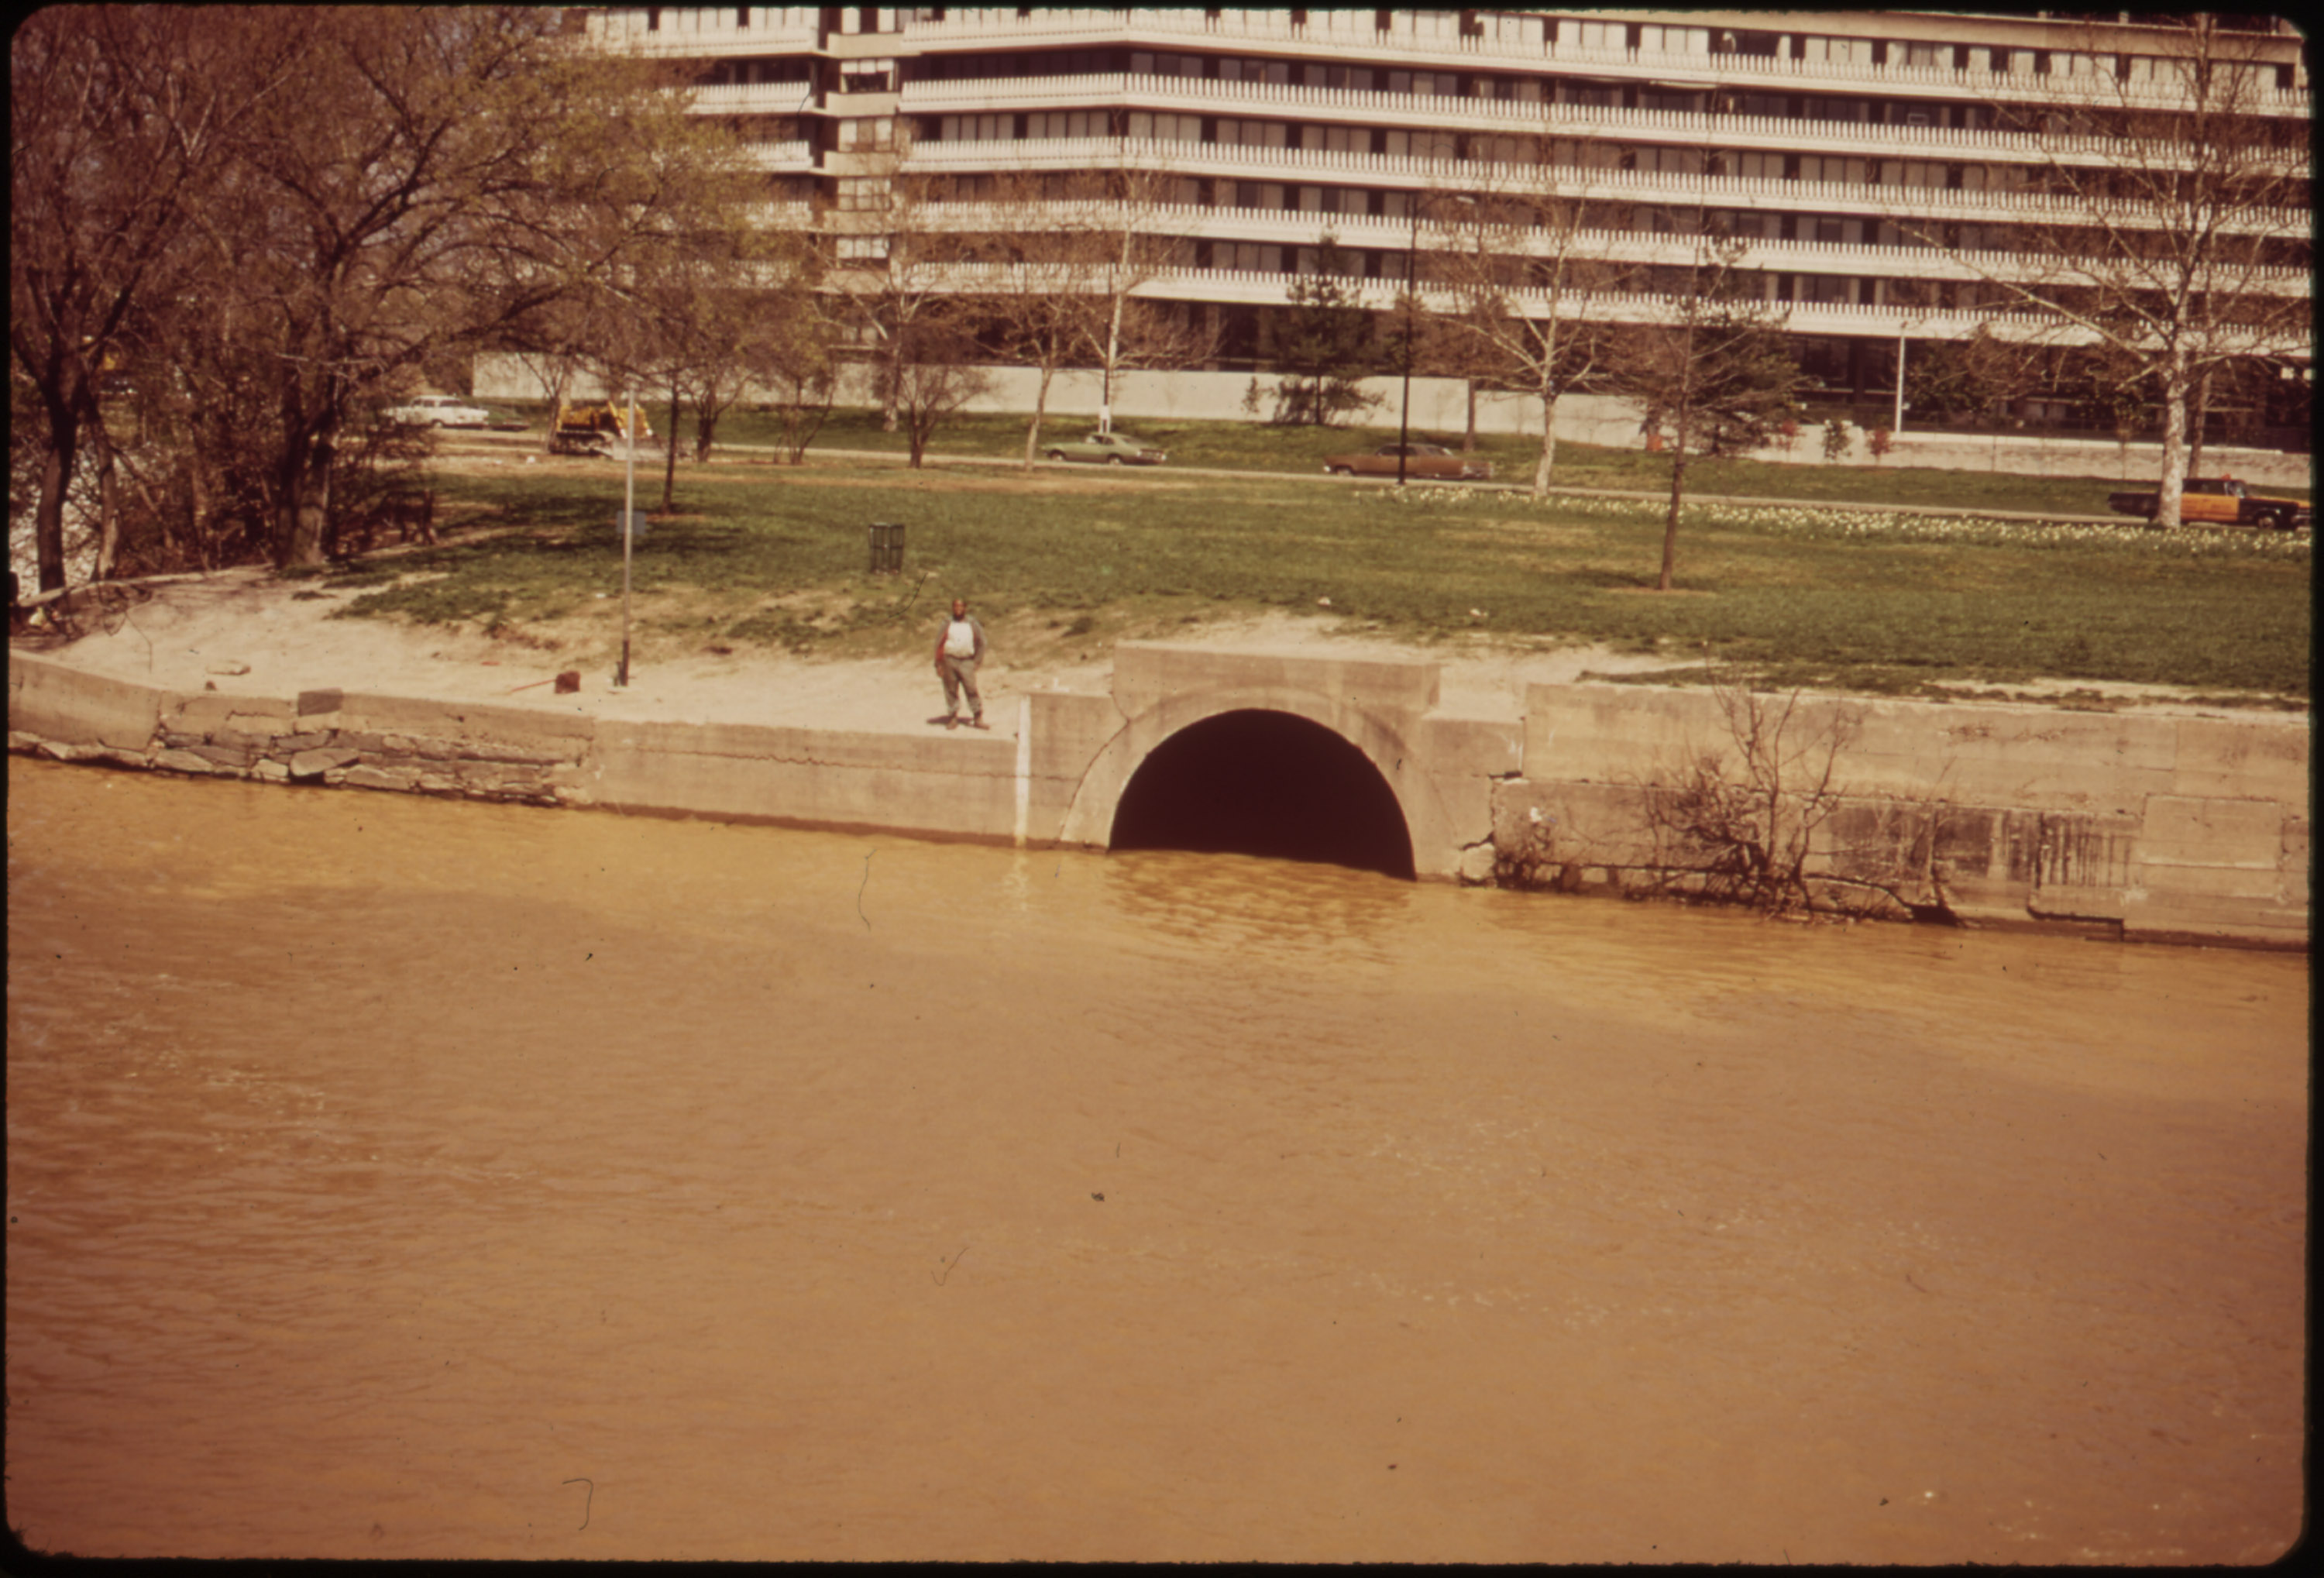 The Georgetown Gap through which raw sewage flowed into the Potomac River.